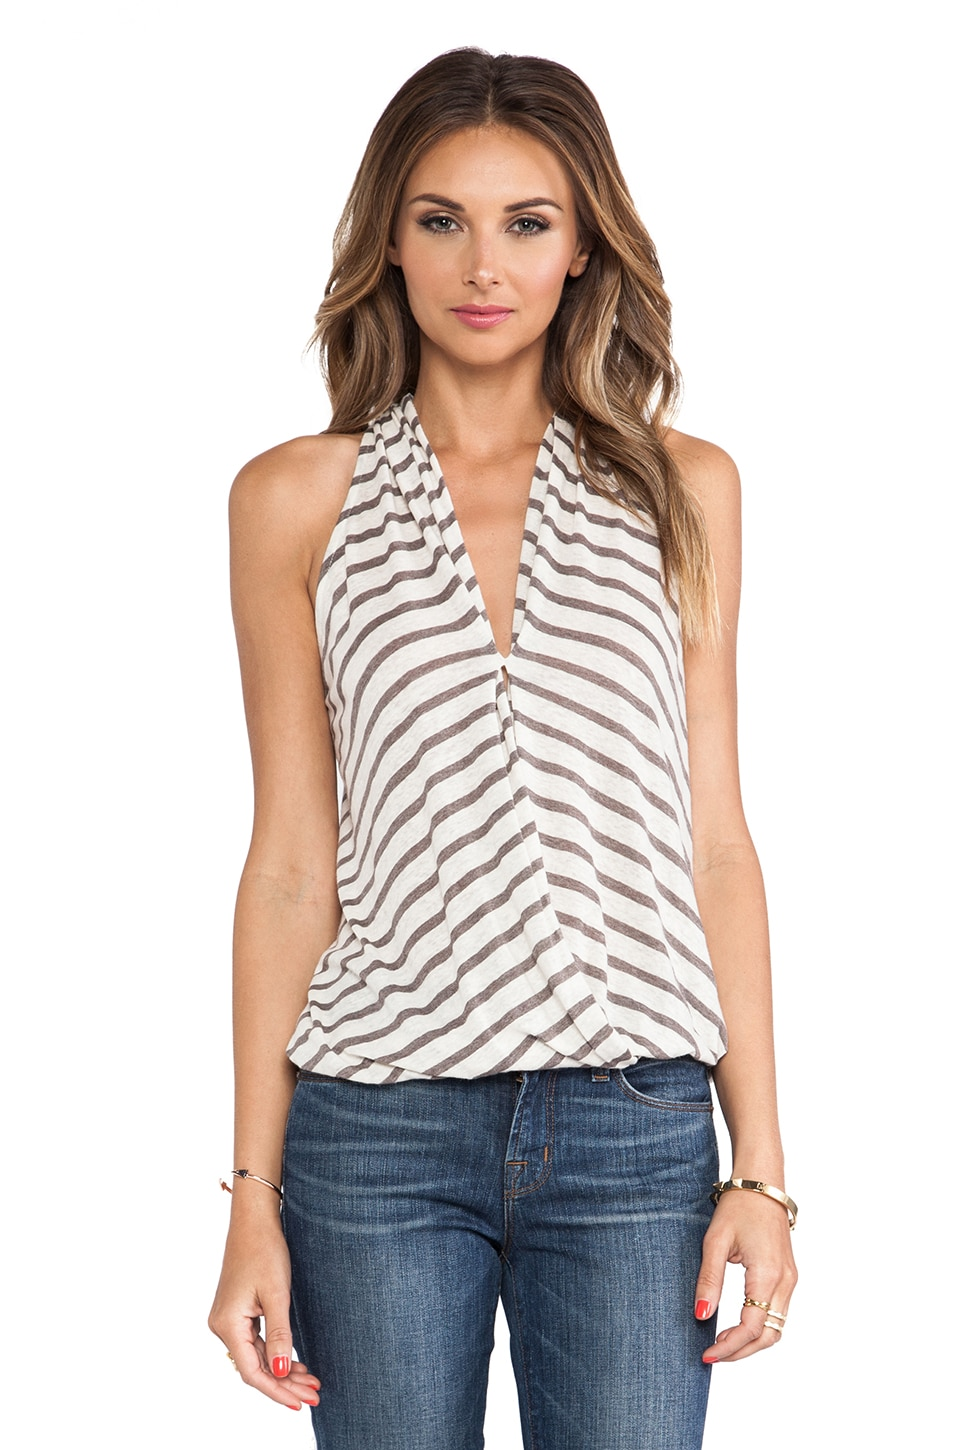 Ella Moss Seaside Drape Tank in Sequoia